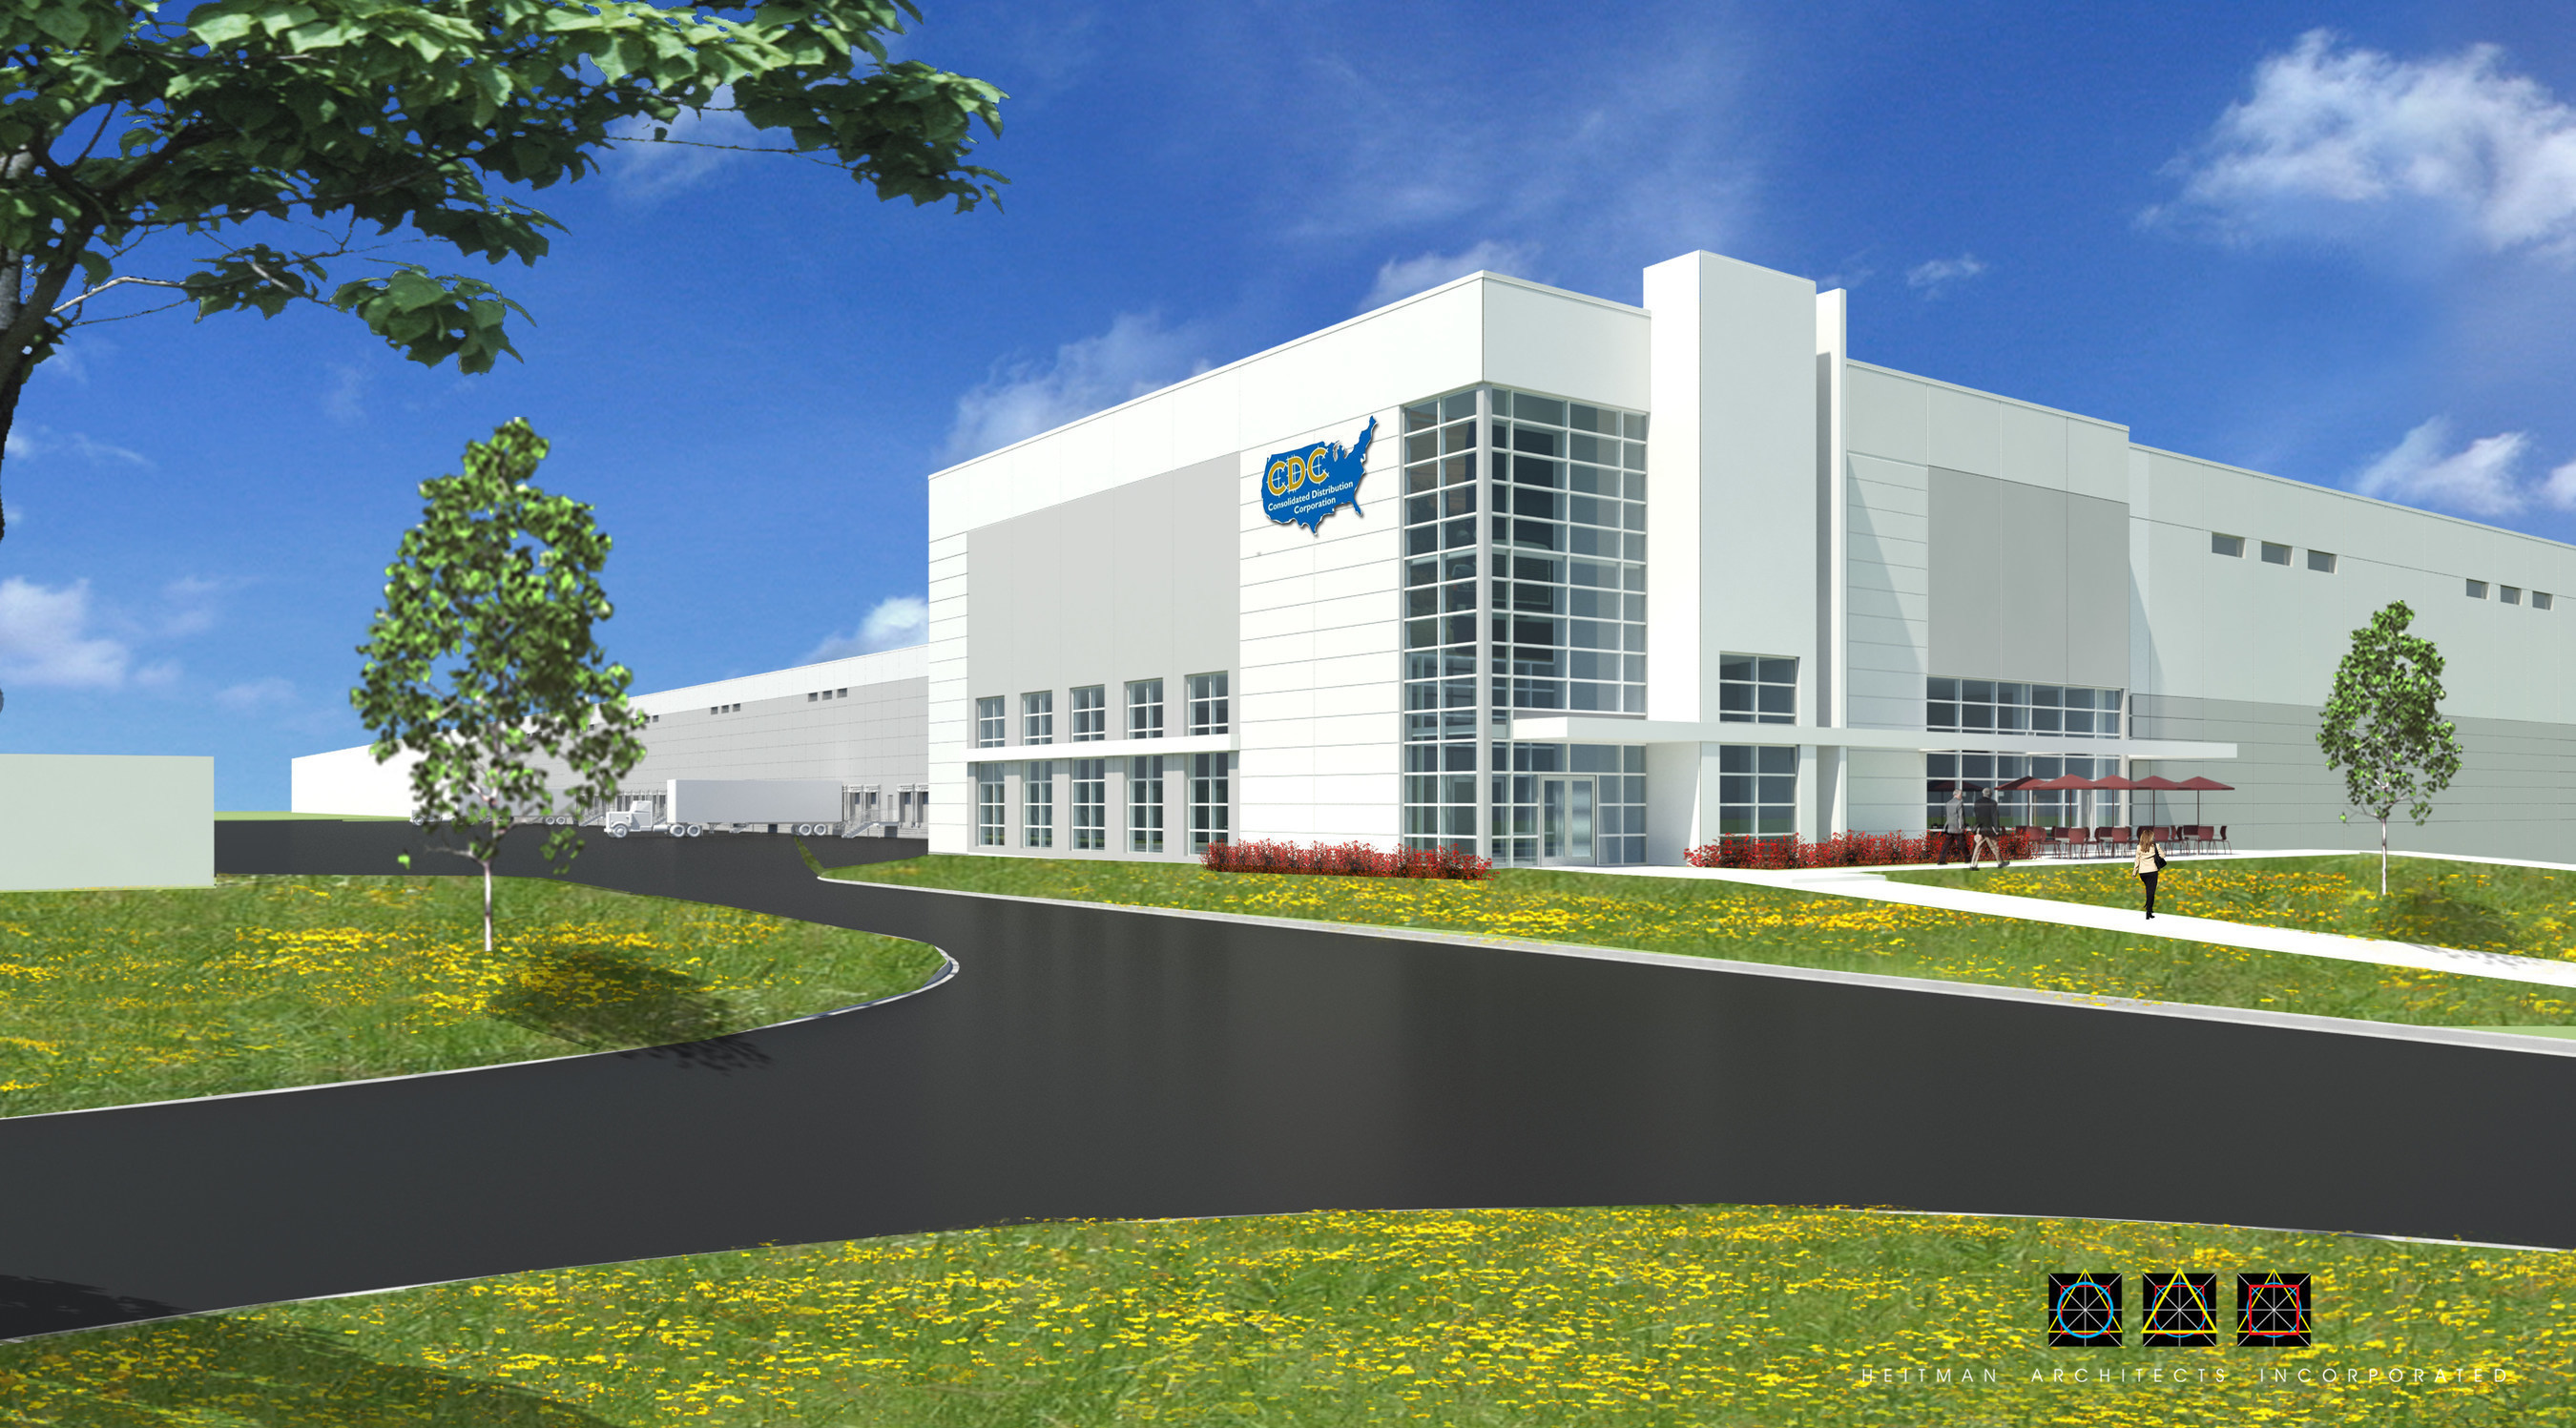 Ridge Development, the industrial development arm of Transwestern Development Co., has broken ground on two buildings in RidgePort Logistics Center for the new headquarters of Consolidated Distribution Corporation (CDC). The foodservice supply chain logistics company is relocating from Lemont and combining five distribution locations into preleased space: a rail-served, 111,244-square-foot freezer build-to-suit and 286,867 square feet of a 574,867-square-foot (expandable to 1,078,867 square feet) ambient distribution facility. Owned by a joint venture between Ridge and Elion Partners LLC, the buildings are slated for delivery in October 2015. For more information, visit the RidgePort website at ridgeportlogisticscenter.com.